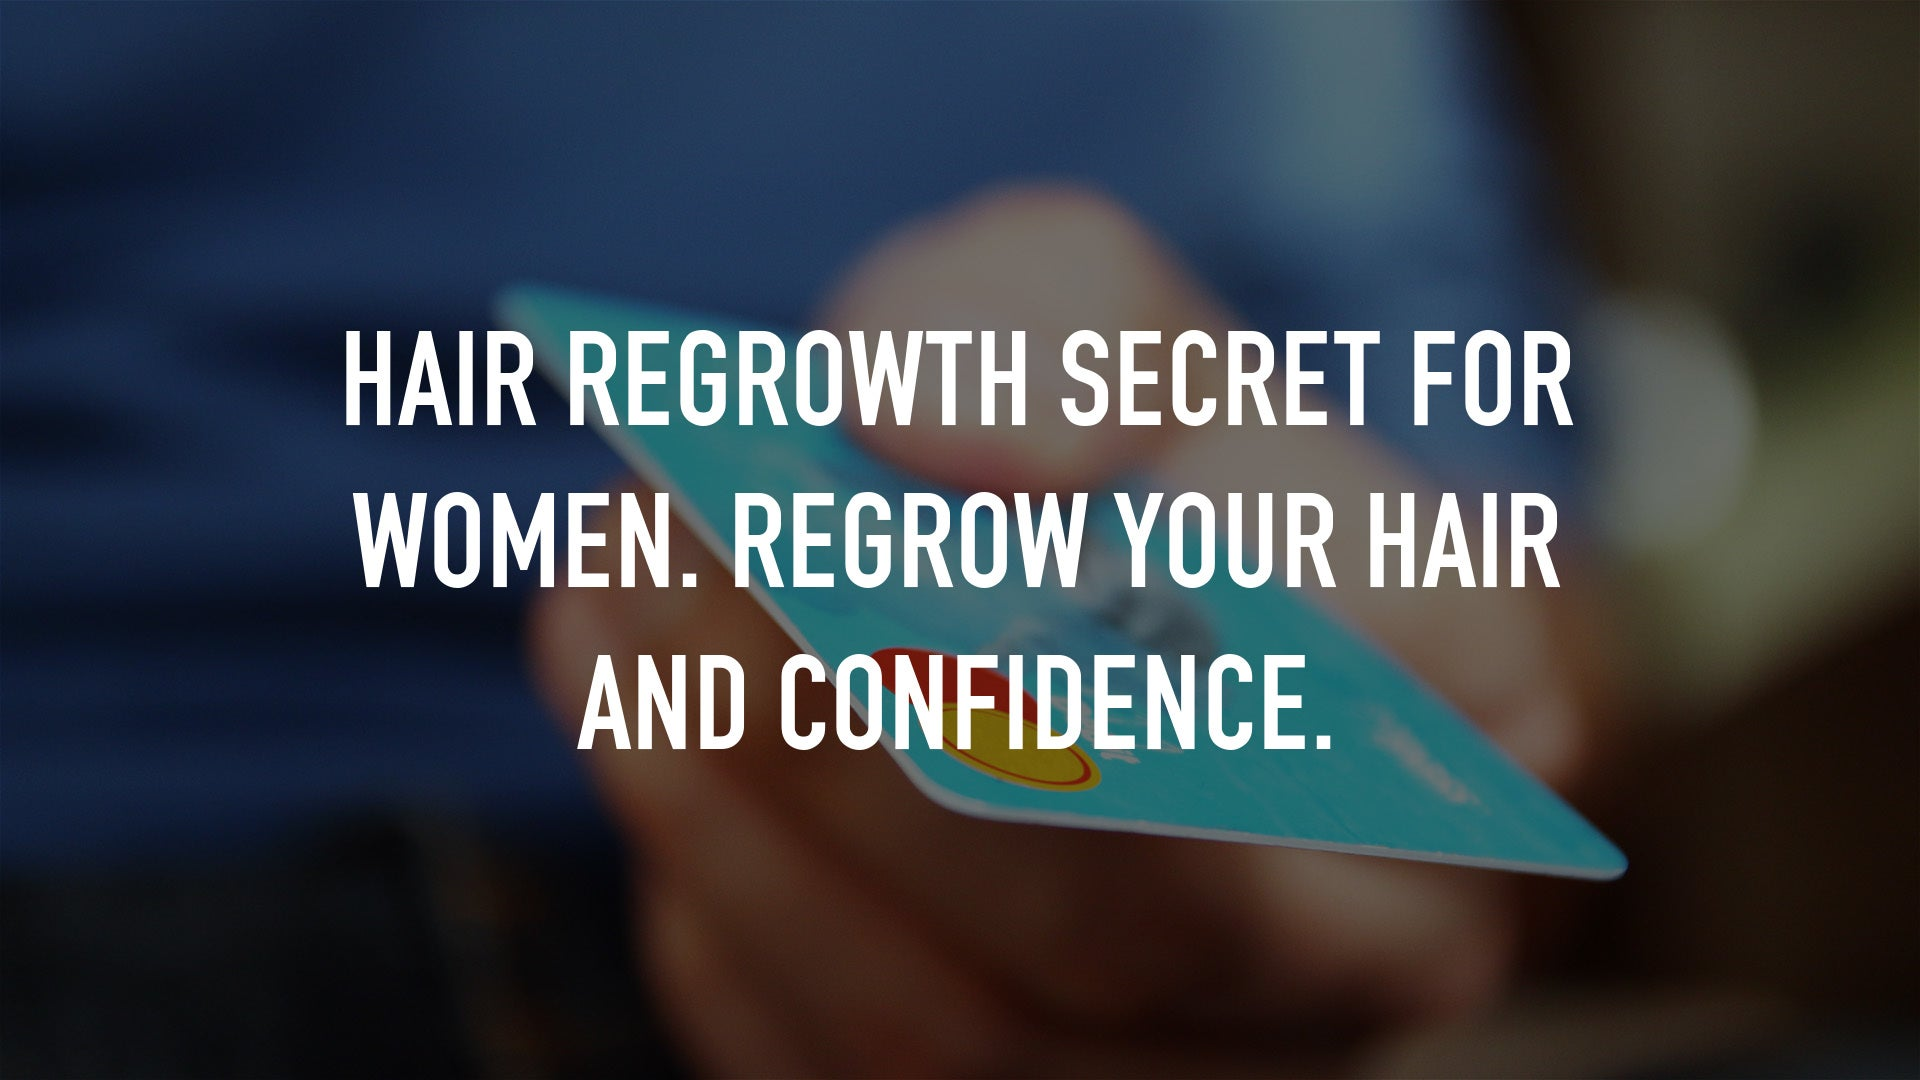 Hair Regrowth Secret for women. Regrow your hair and confidence.